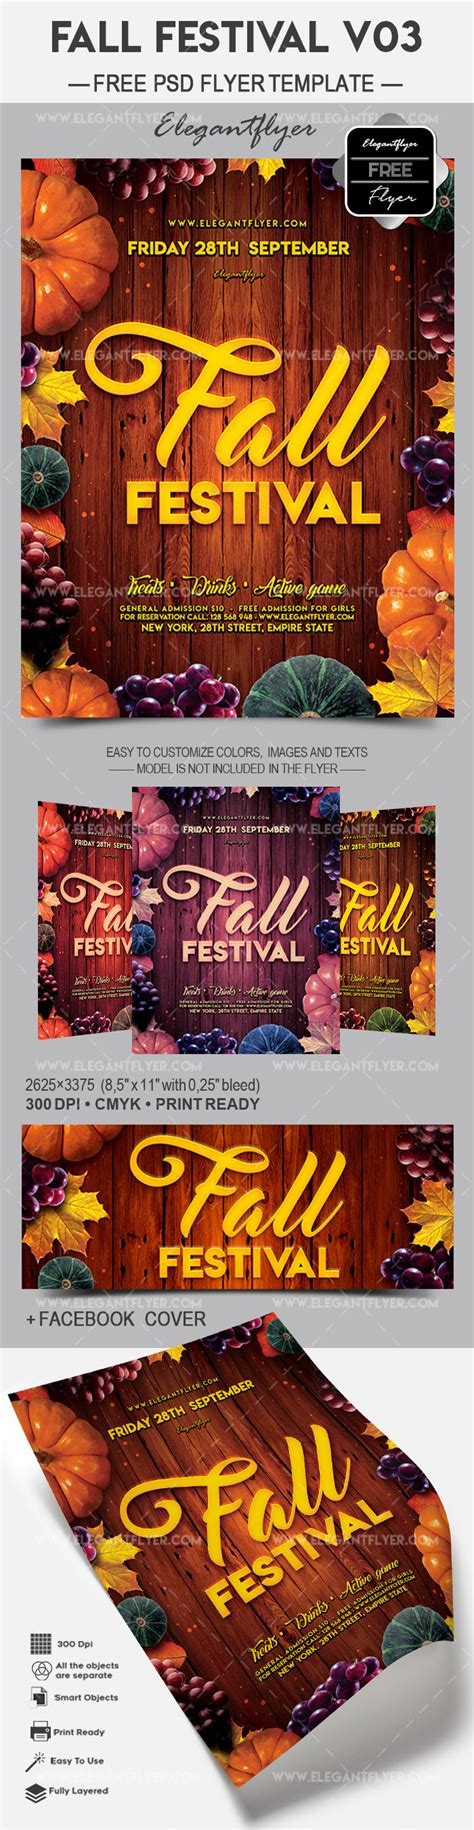 Free Festival Flyer Template Psd